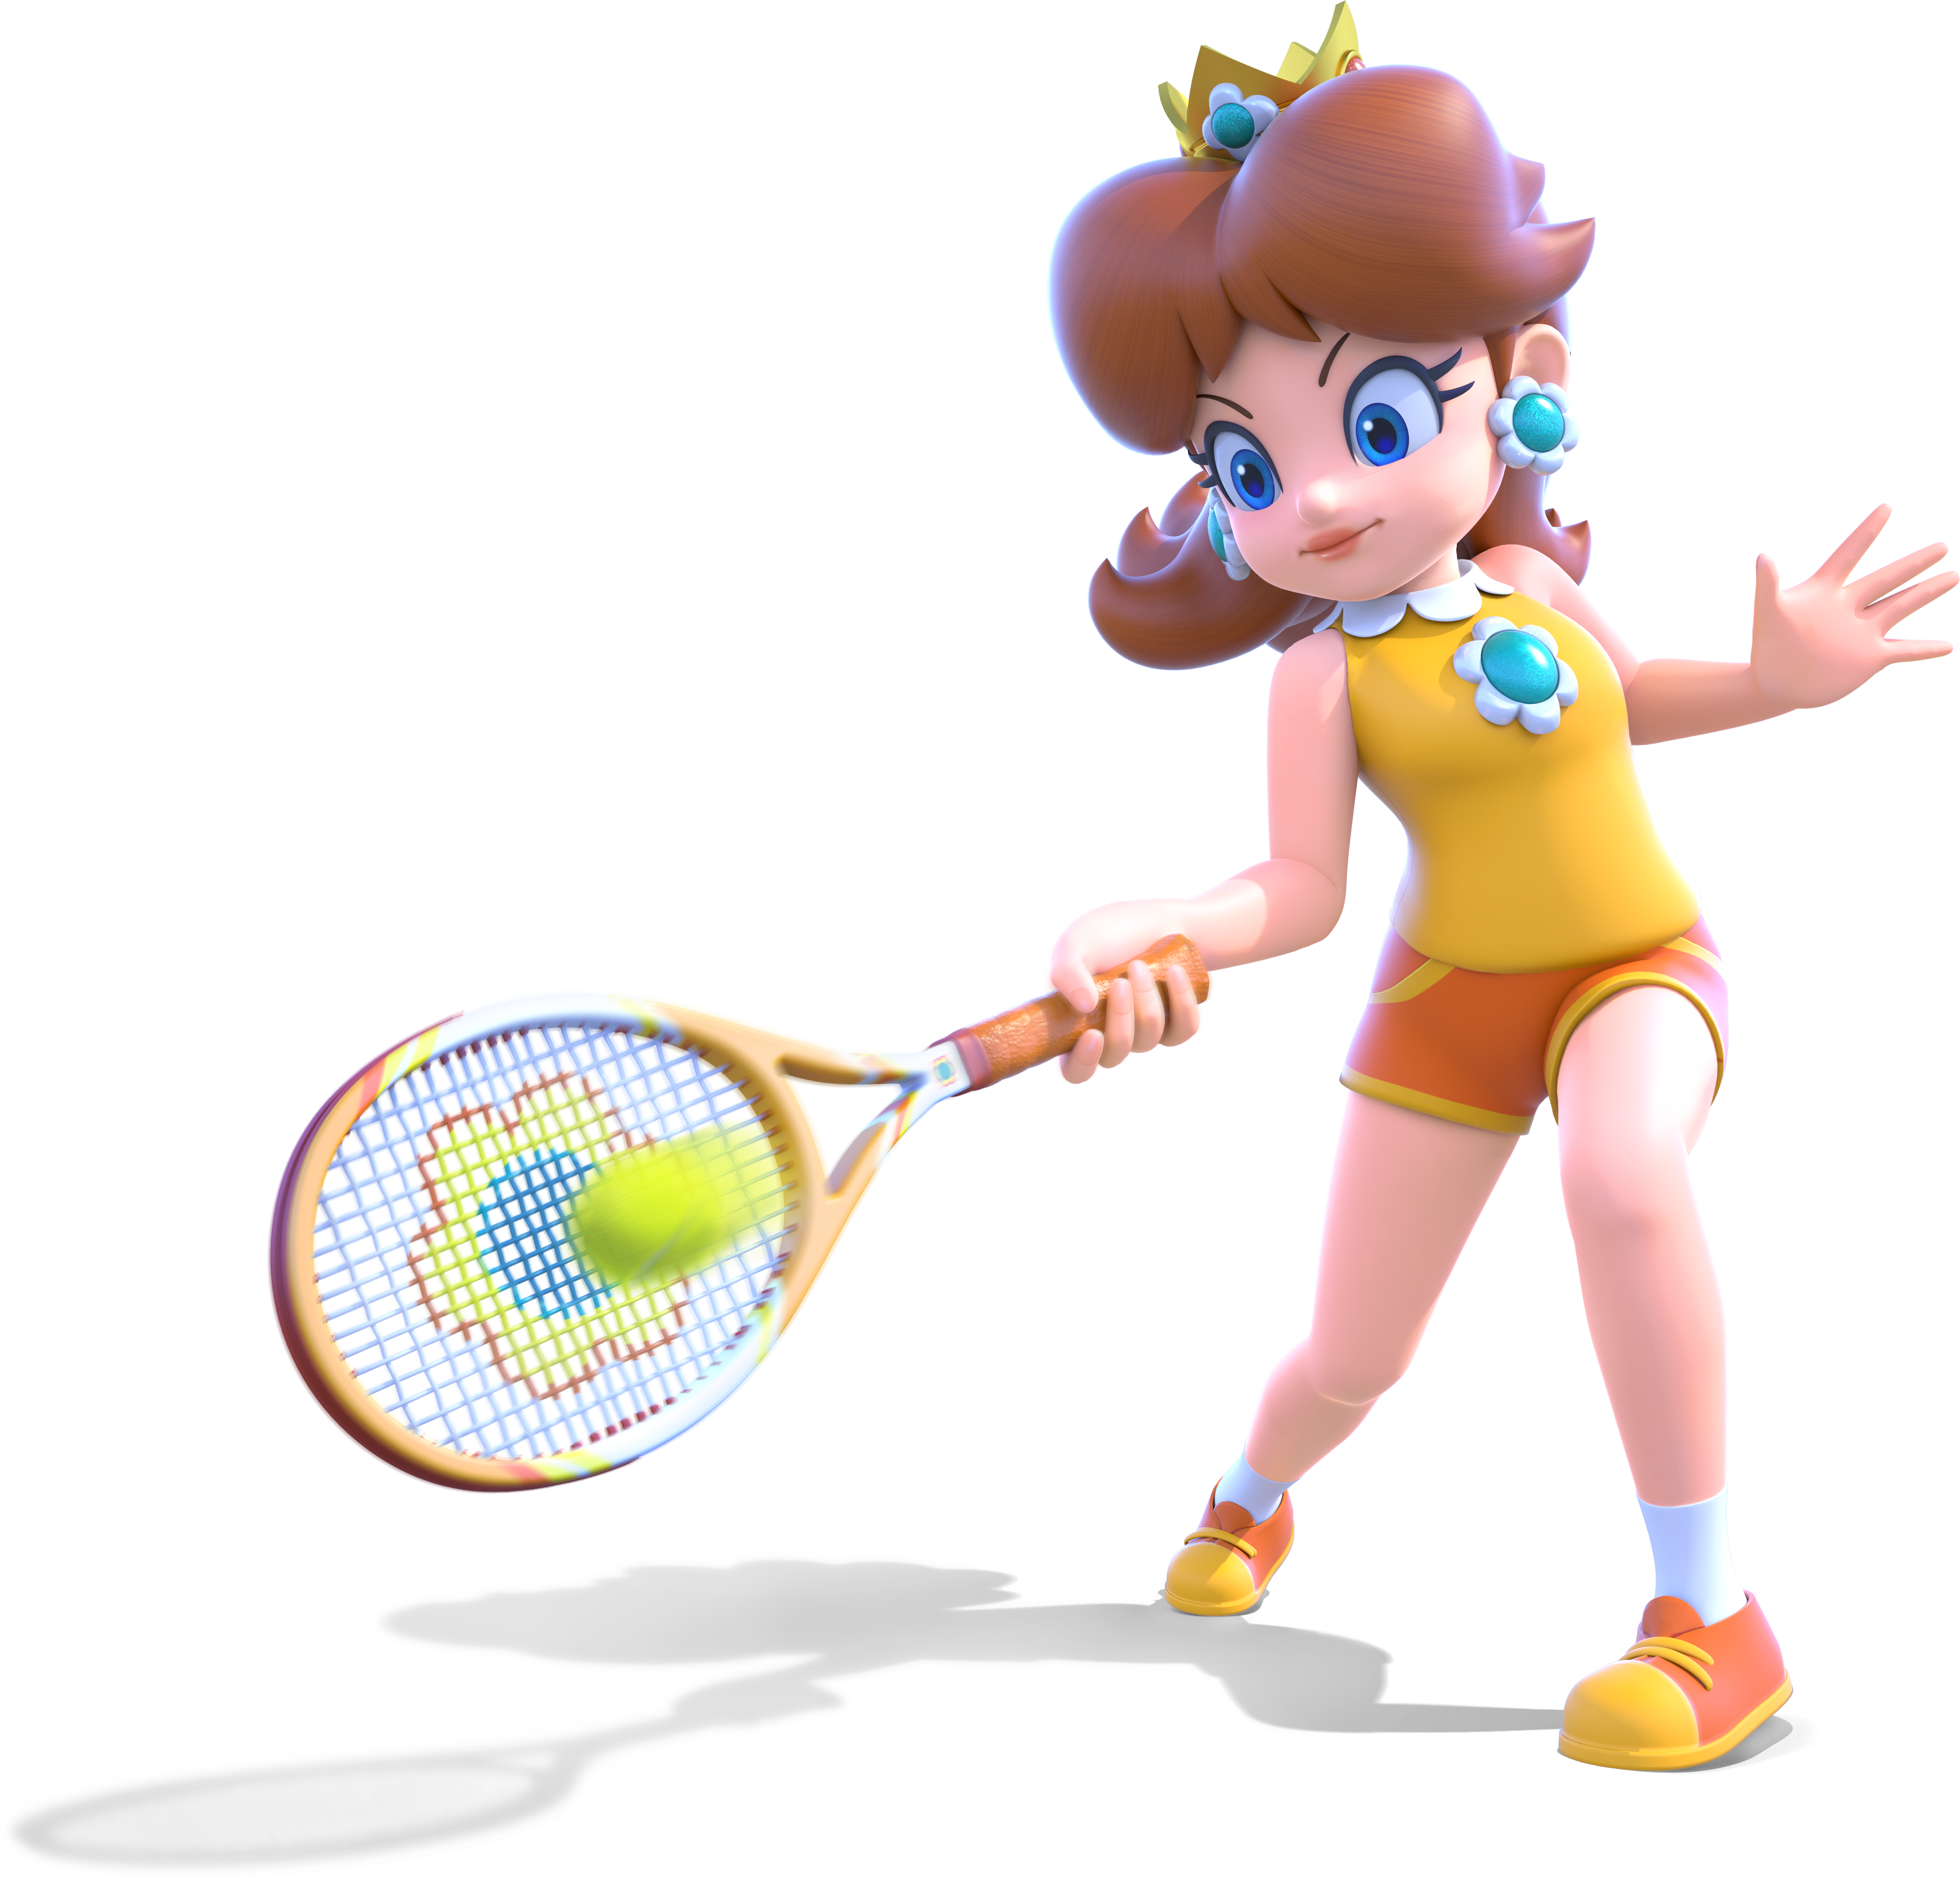 Princess crown narrow clipart banner free Daisy finally got new HD artwork in Mario Tennis, and it looks great ... banner free